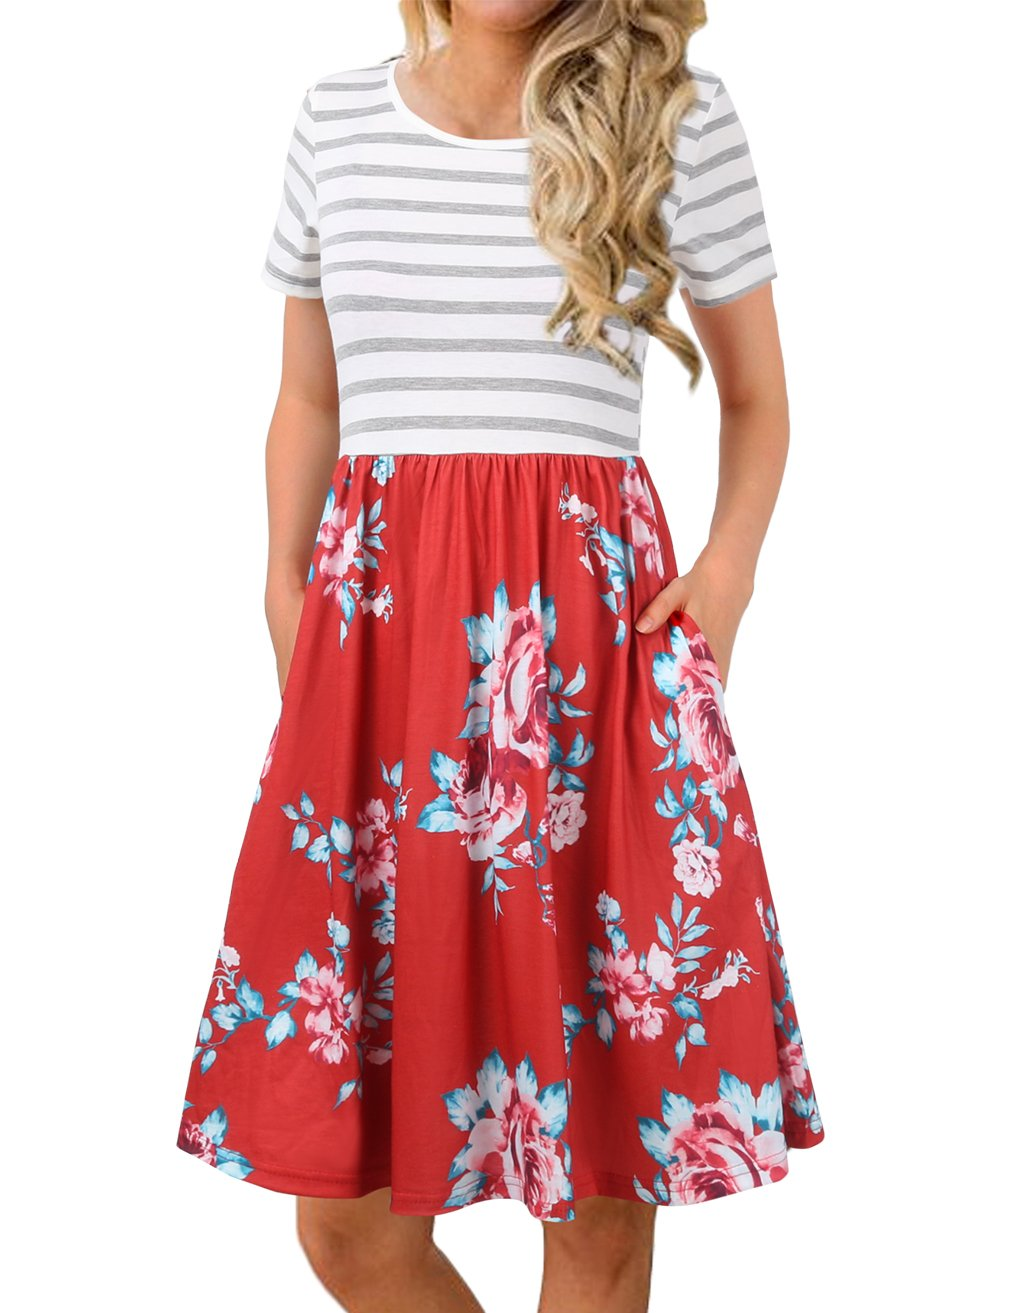 FANVOOK Summer Dresses for Women,Chic Juniors Casual Fit and Flare Dress Red S